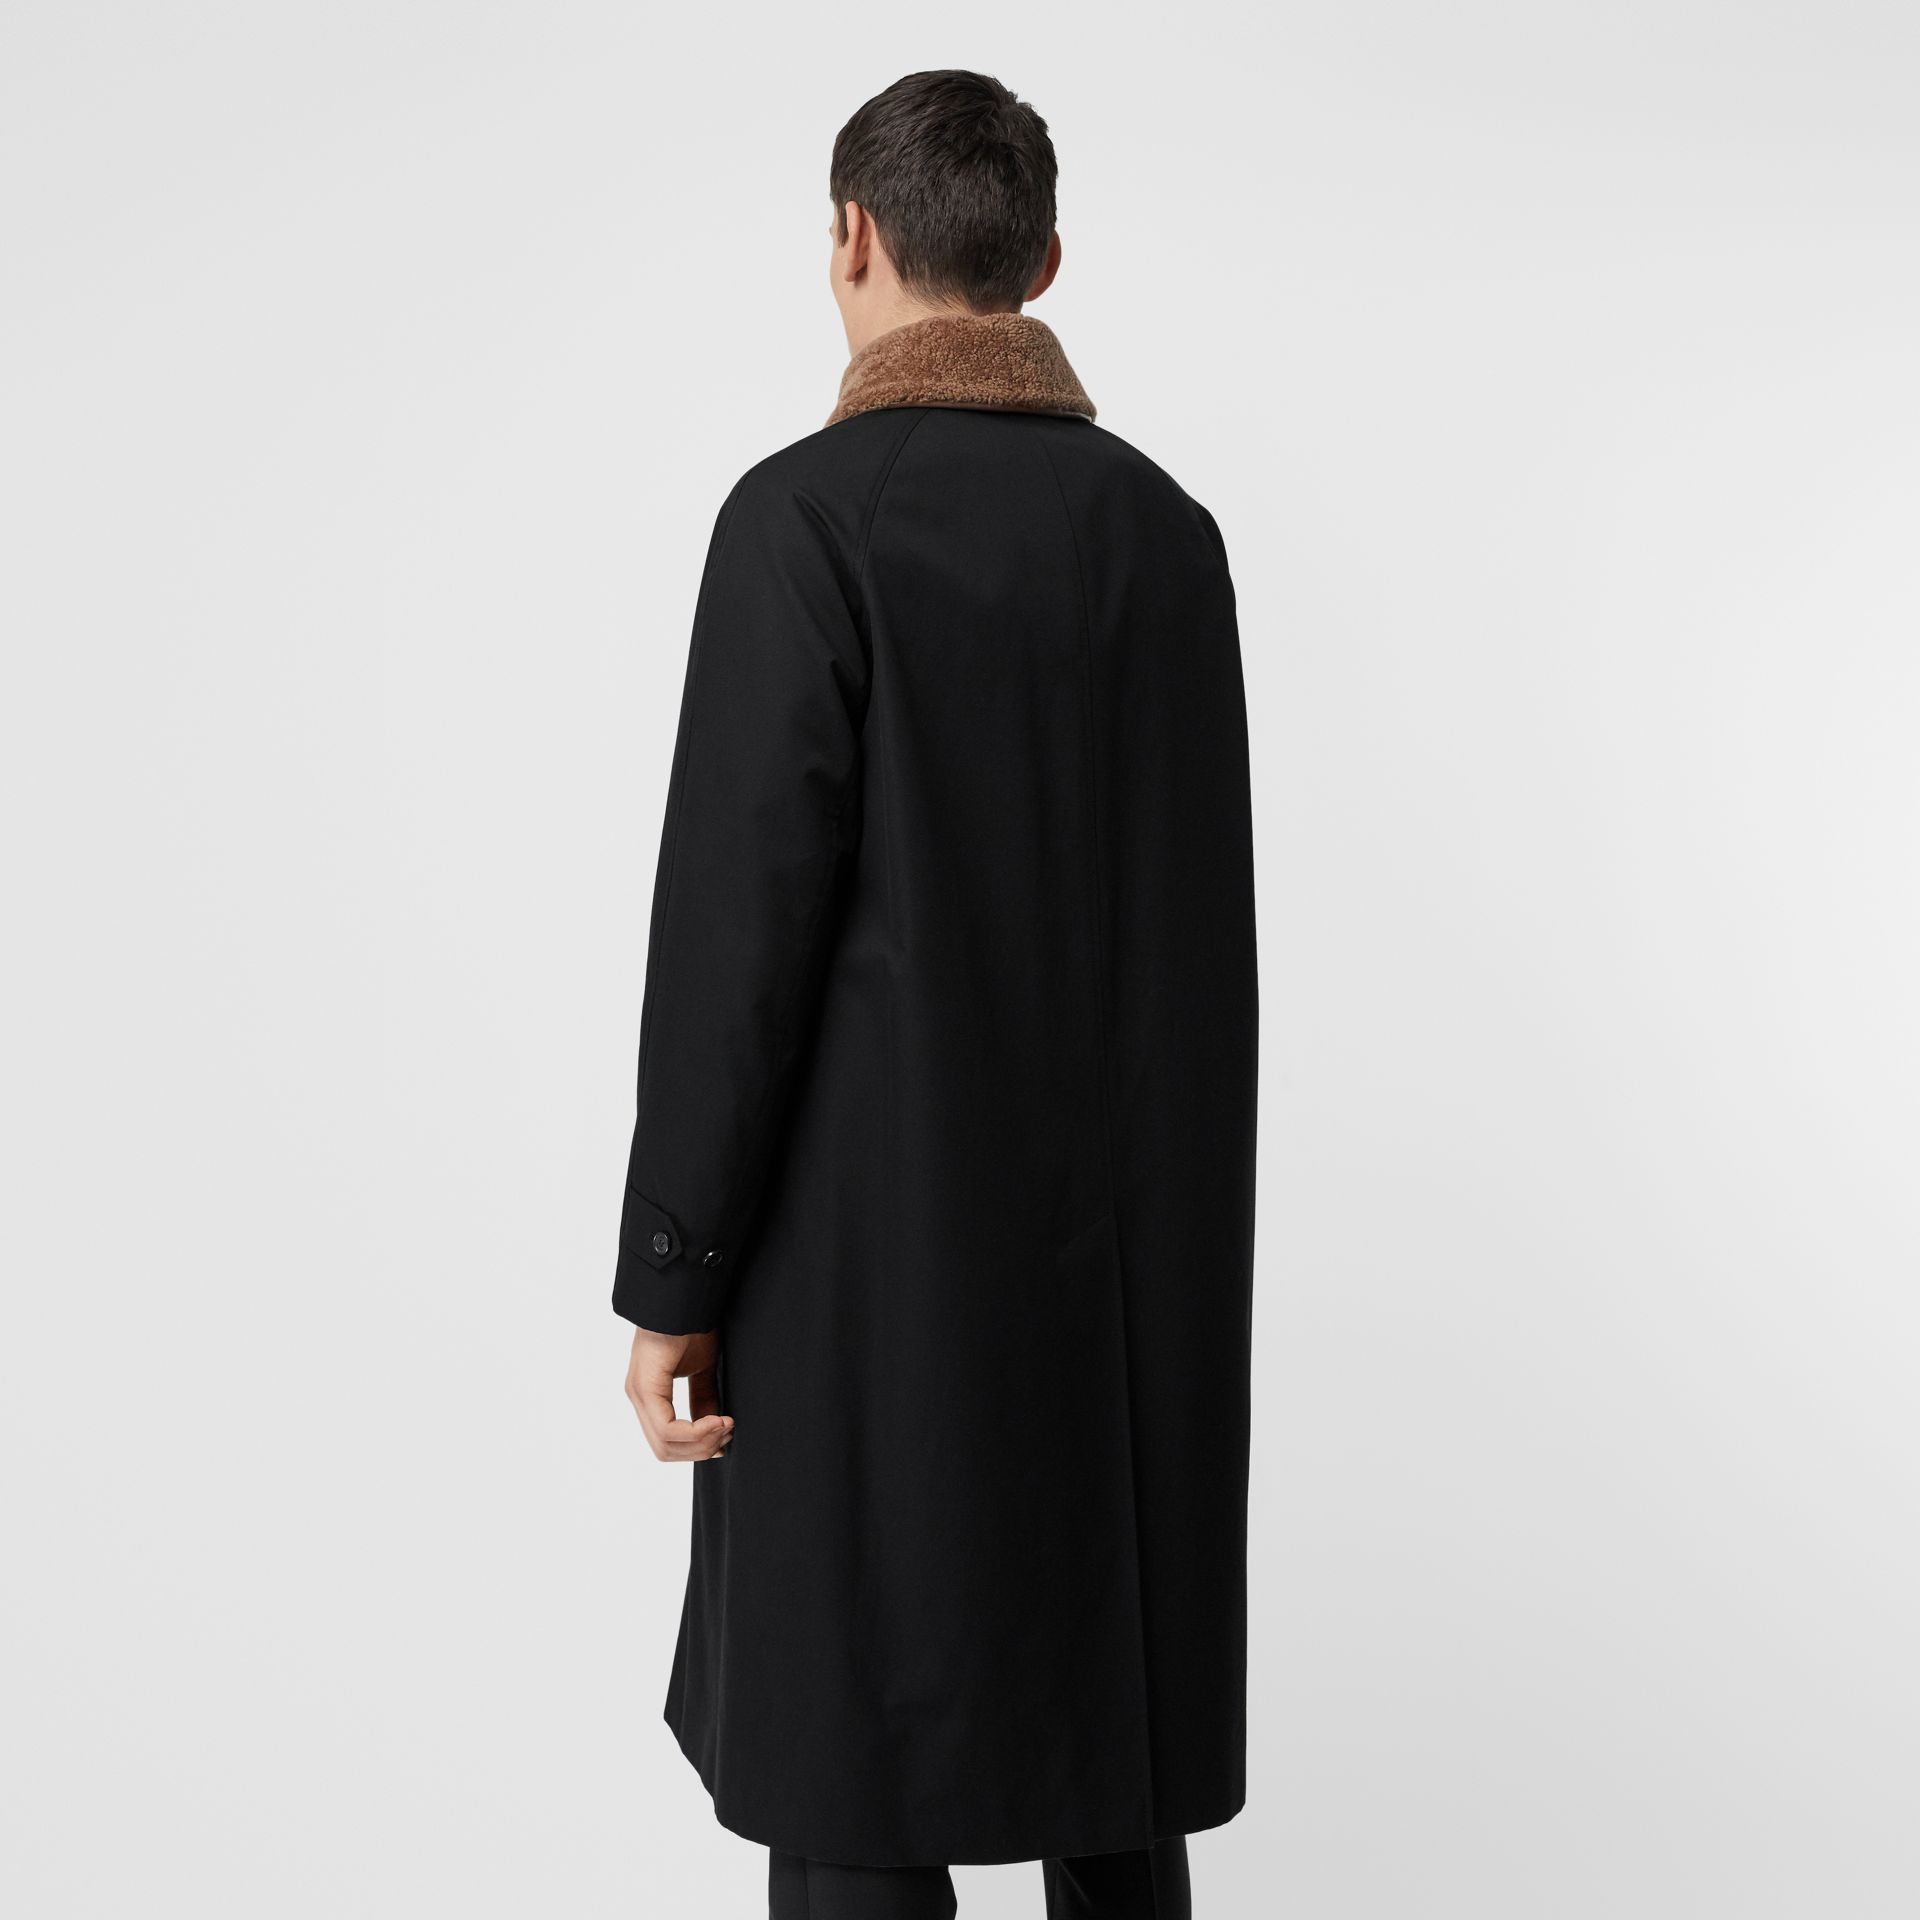 Contrast Shearling Collar Cotton Car Coat in Black - Men | Burberry - gallery image 2